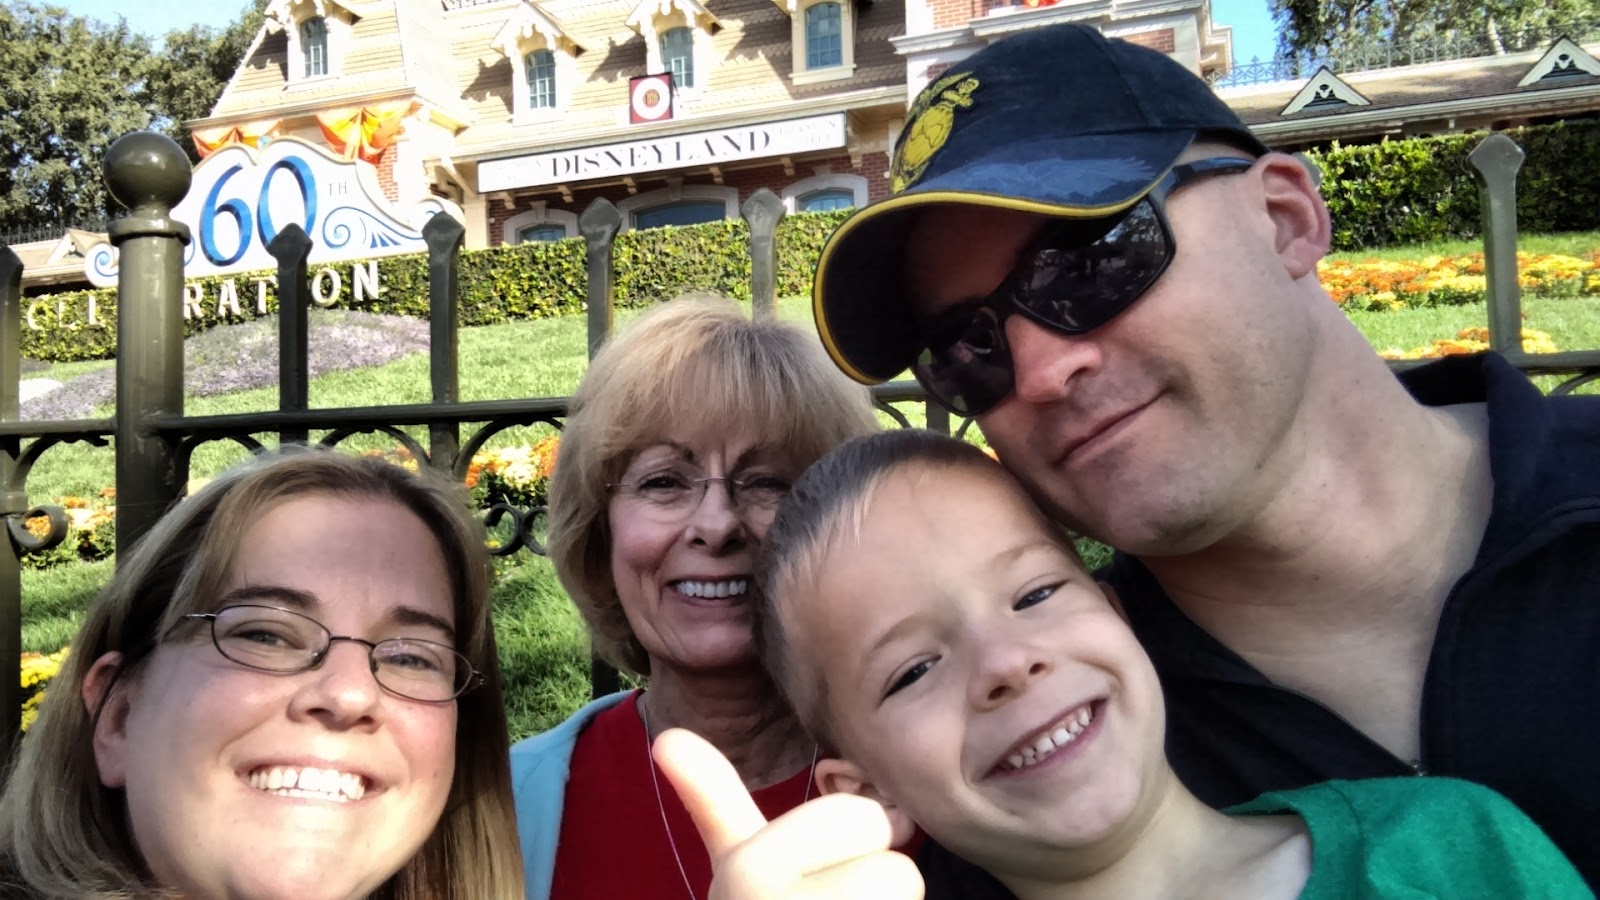 Disneyland family picture.jpg